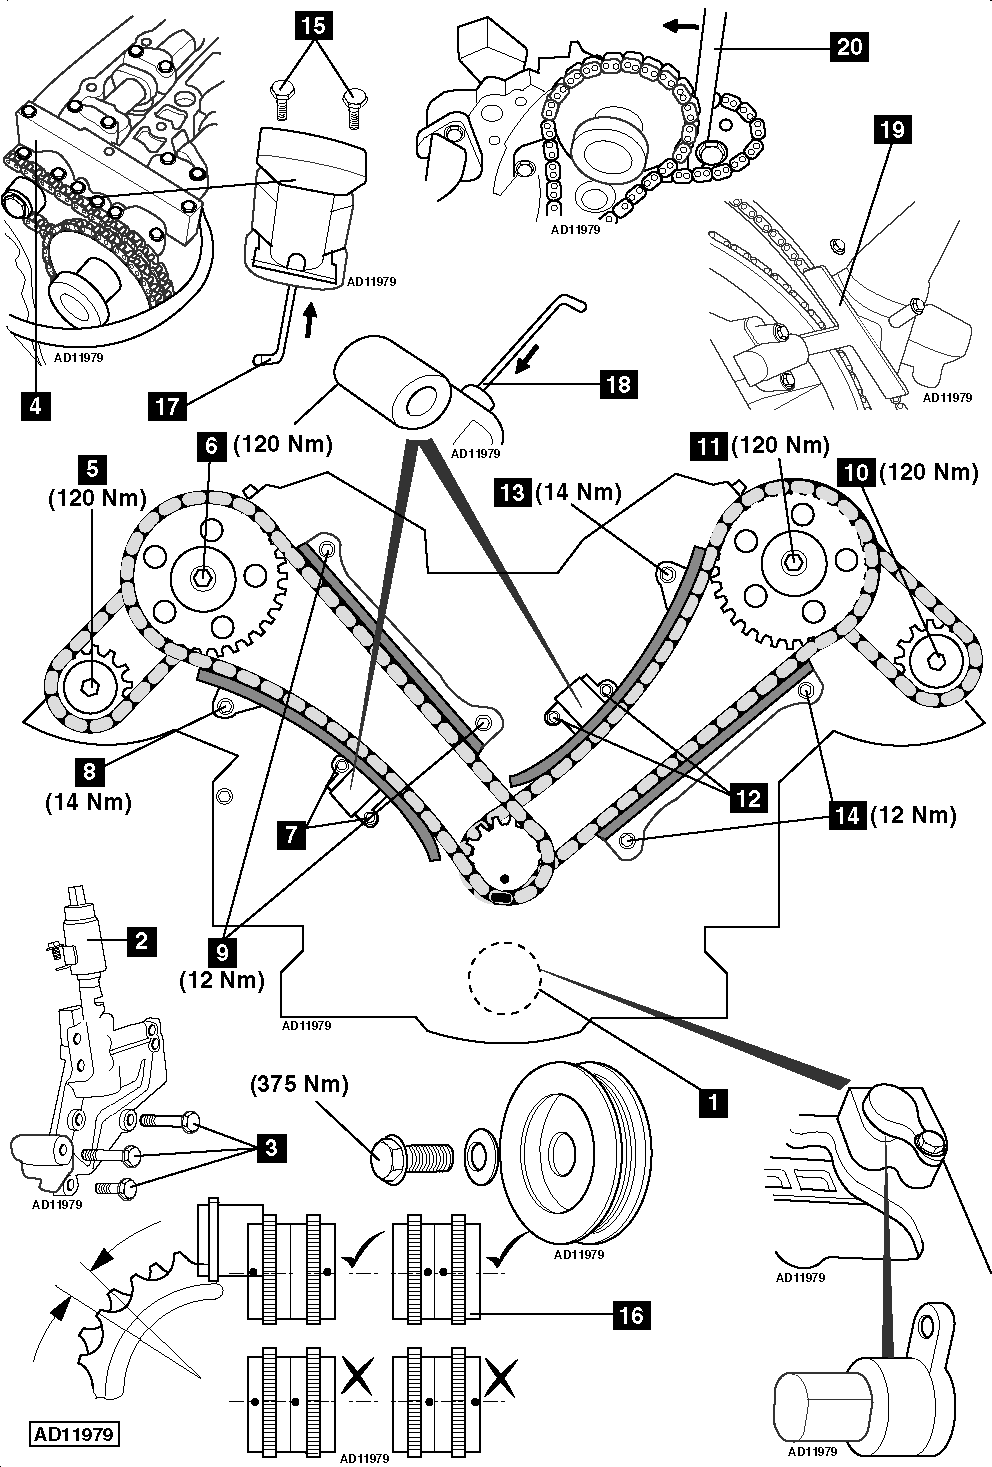 Service manual [2004 Jaguar Xj Series How To Remove